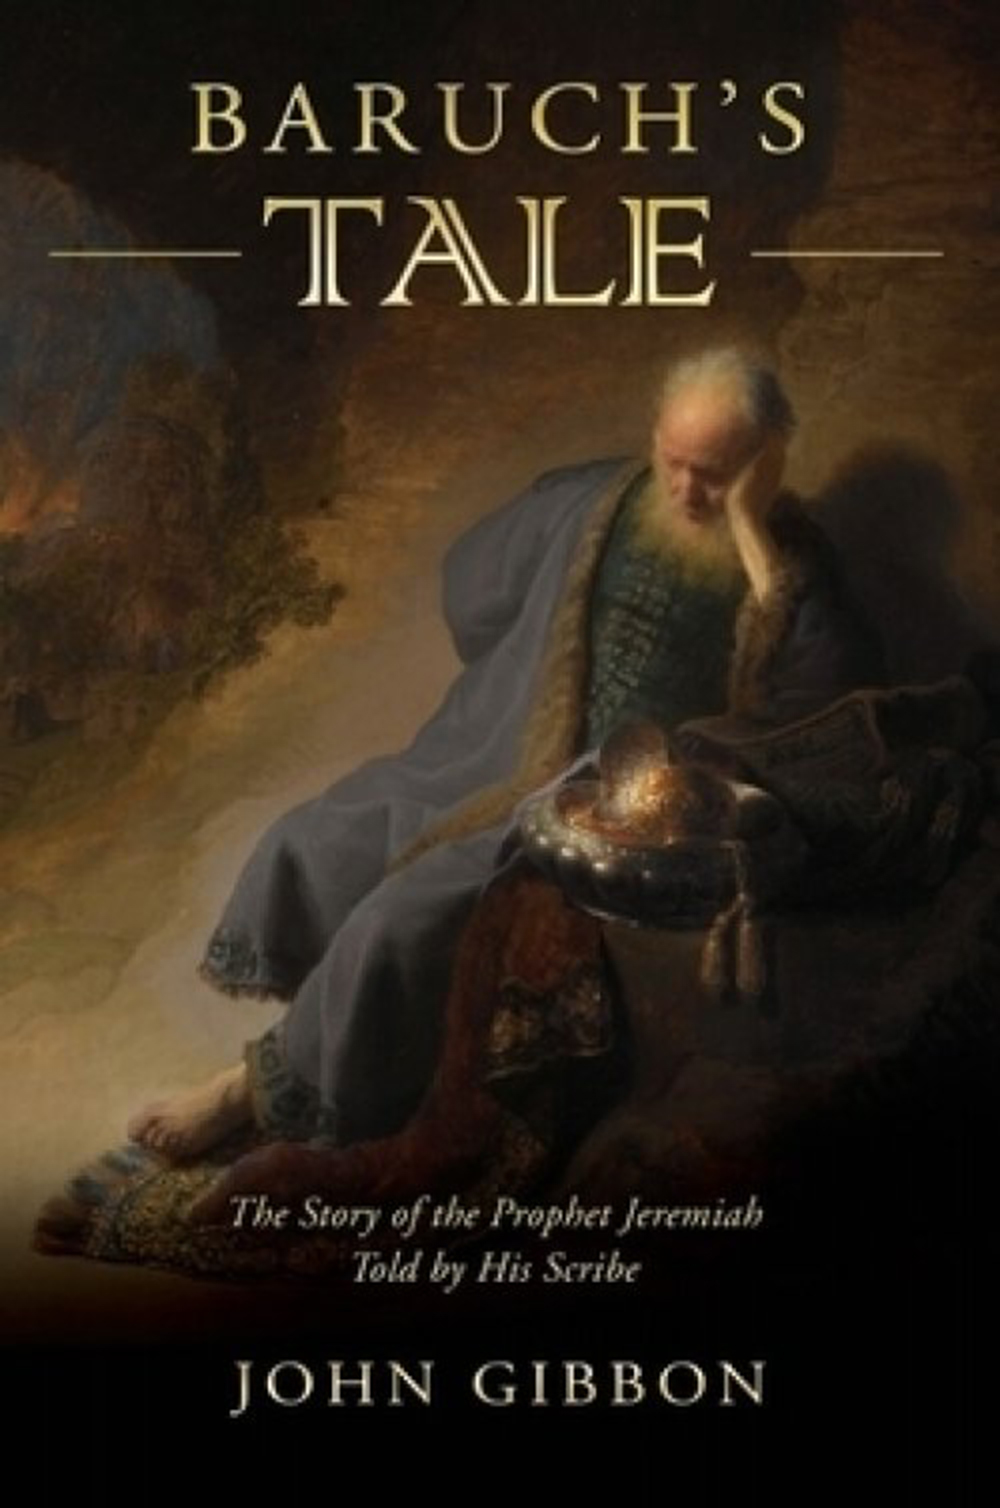 Baruch's Tale